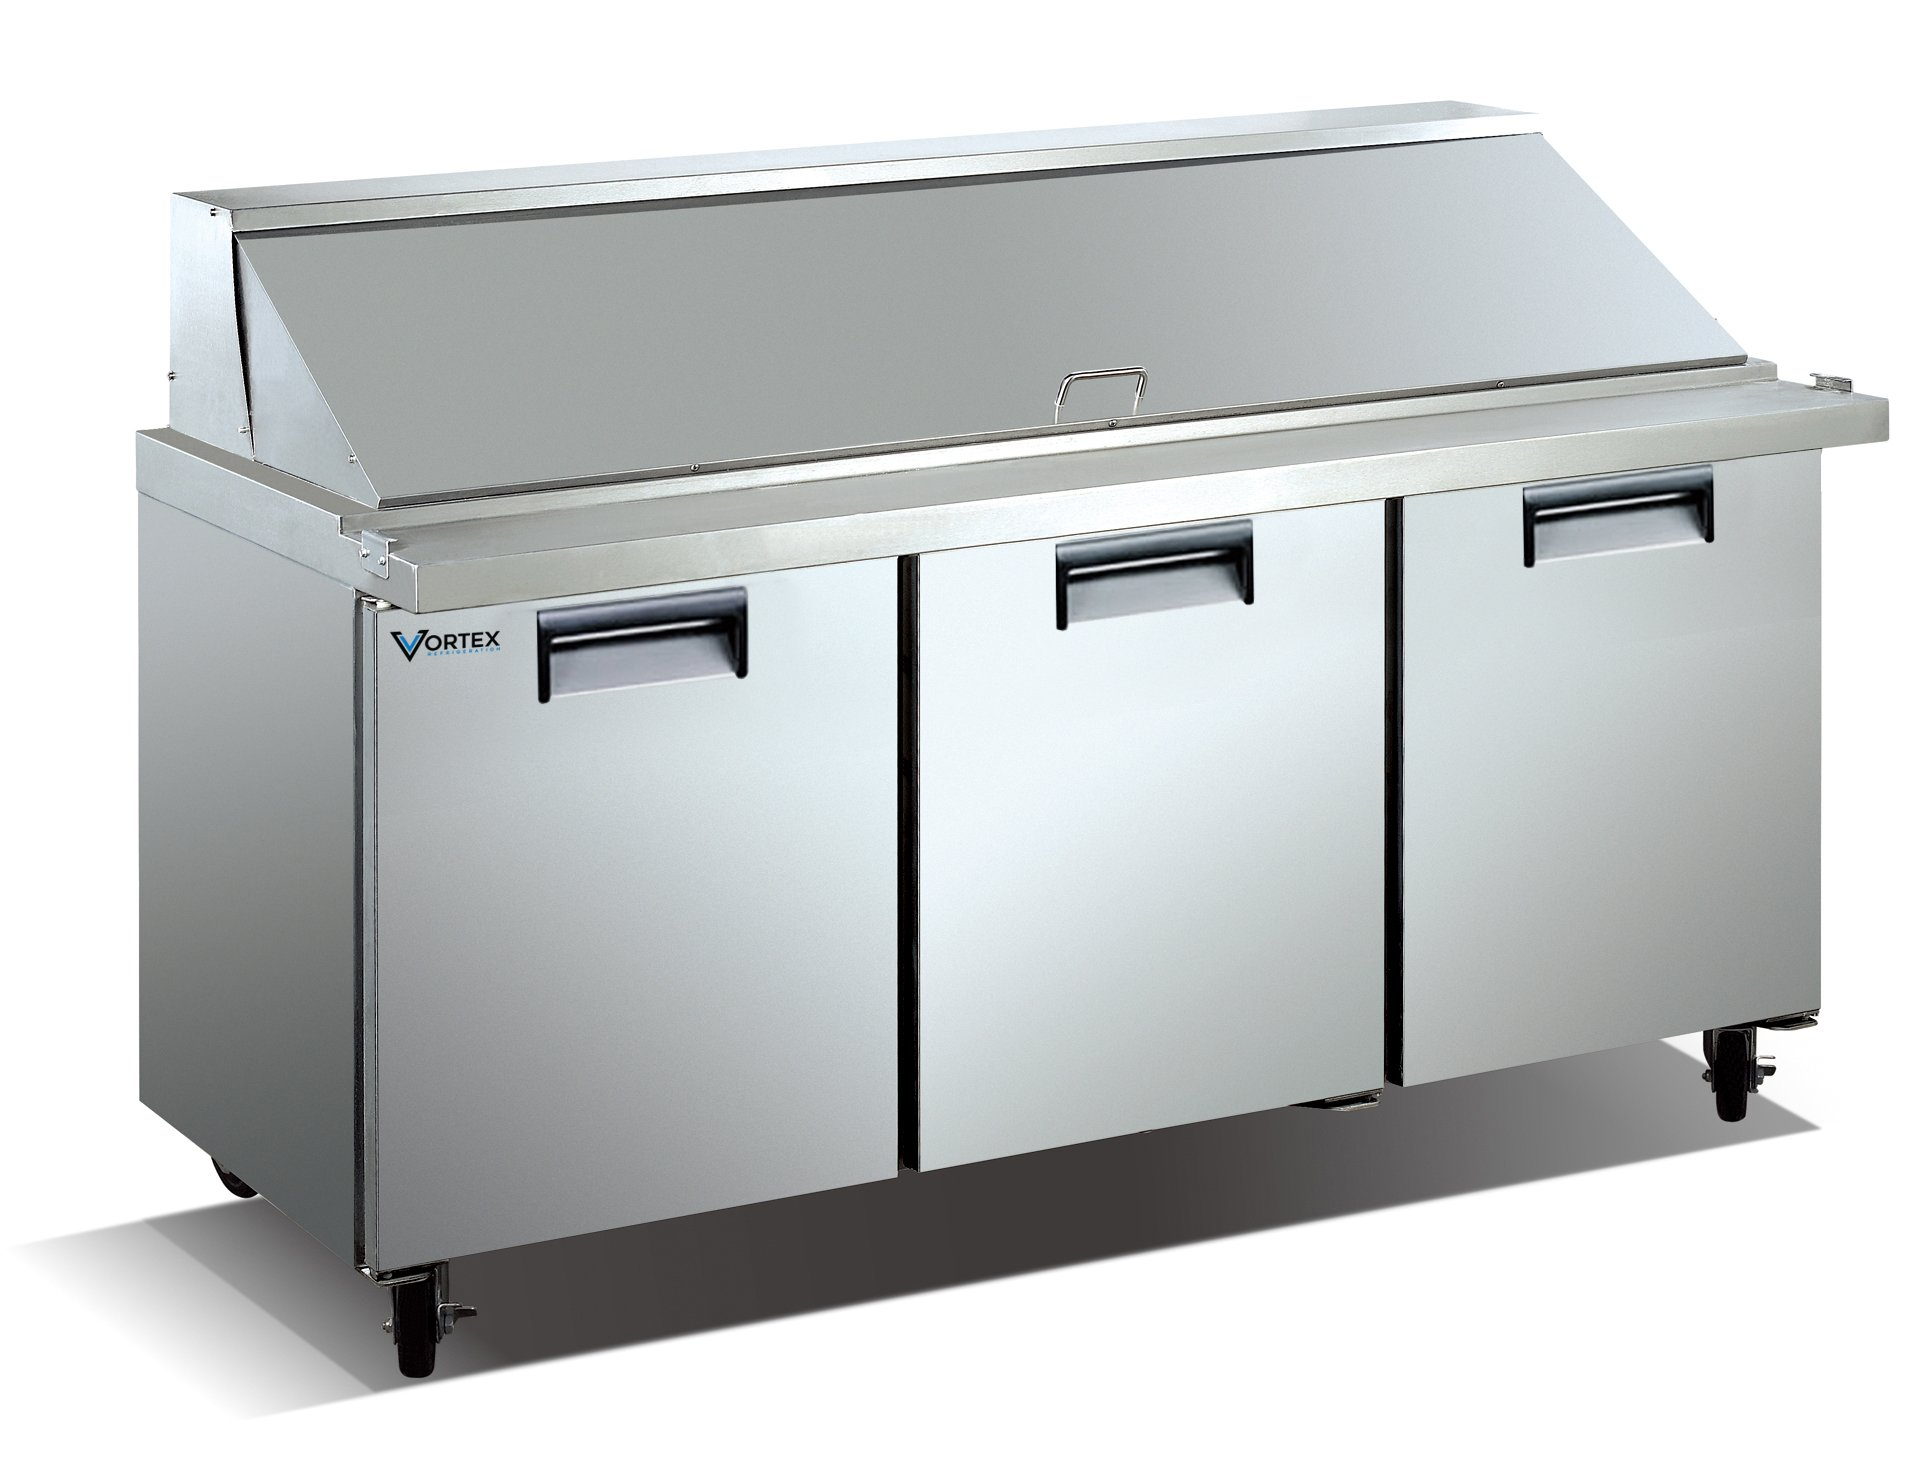 Vortex Refrigeration Commercial 3 Door 72'' 30 Pan Mega Top Sandwich Prep Table - 20 Cu. Ft. PREMIUM MODEL!